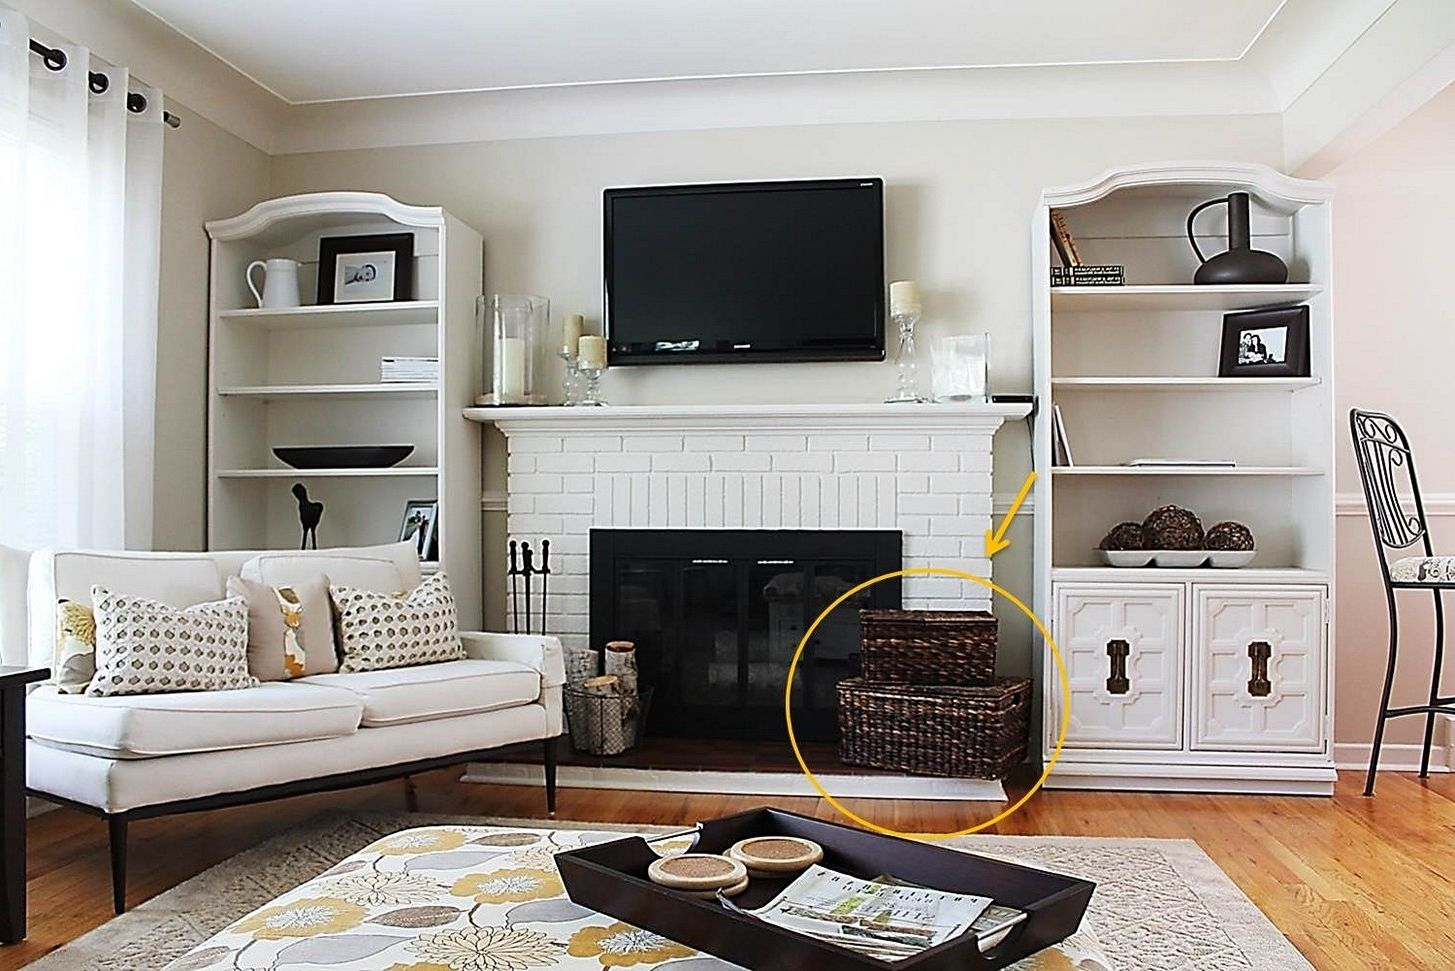 Living Room Toy Storage creative toy storage ideas for living room | home design